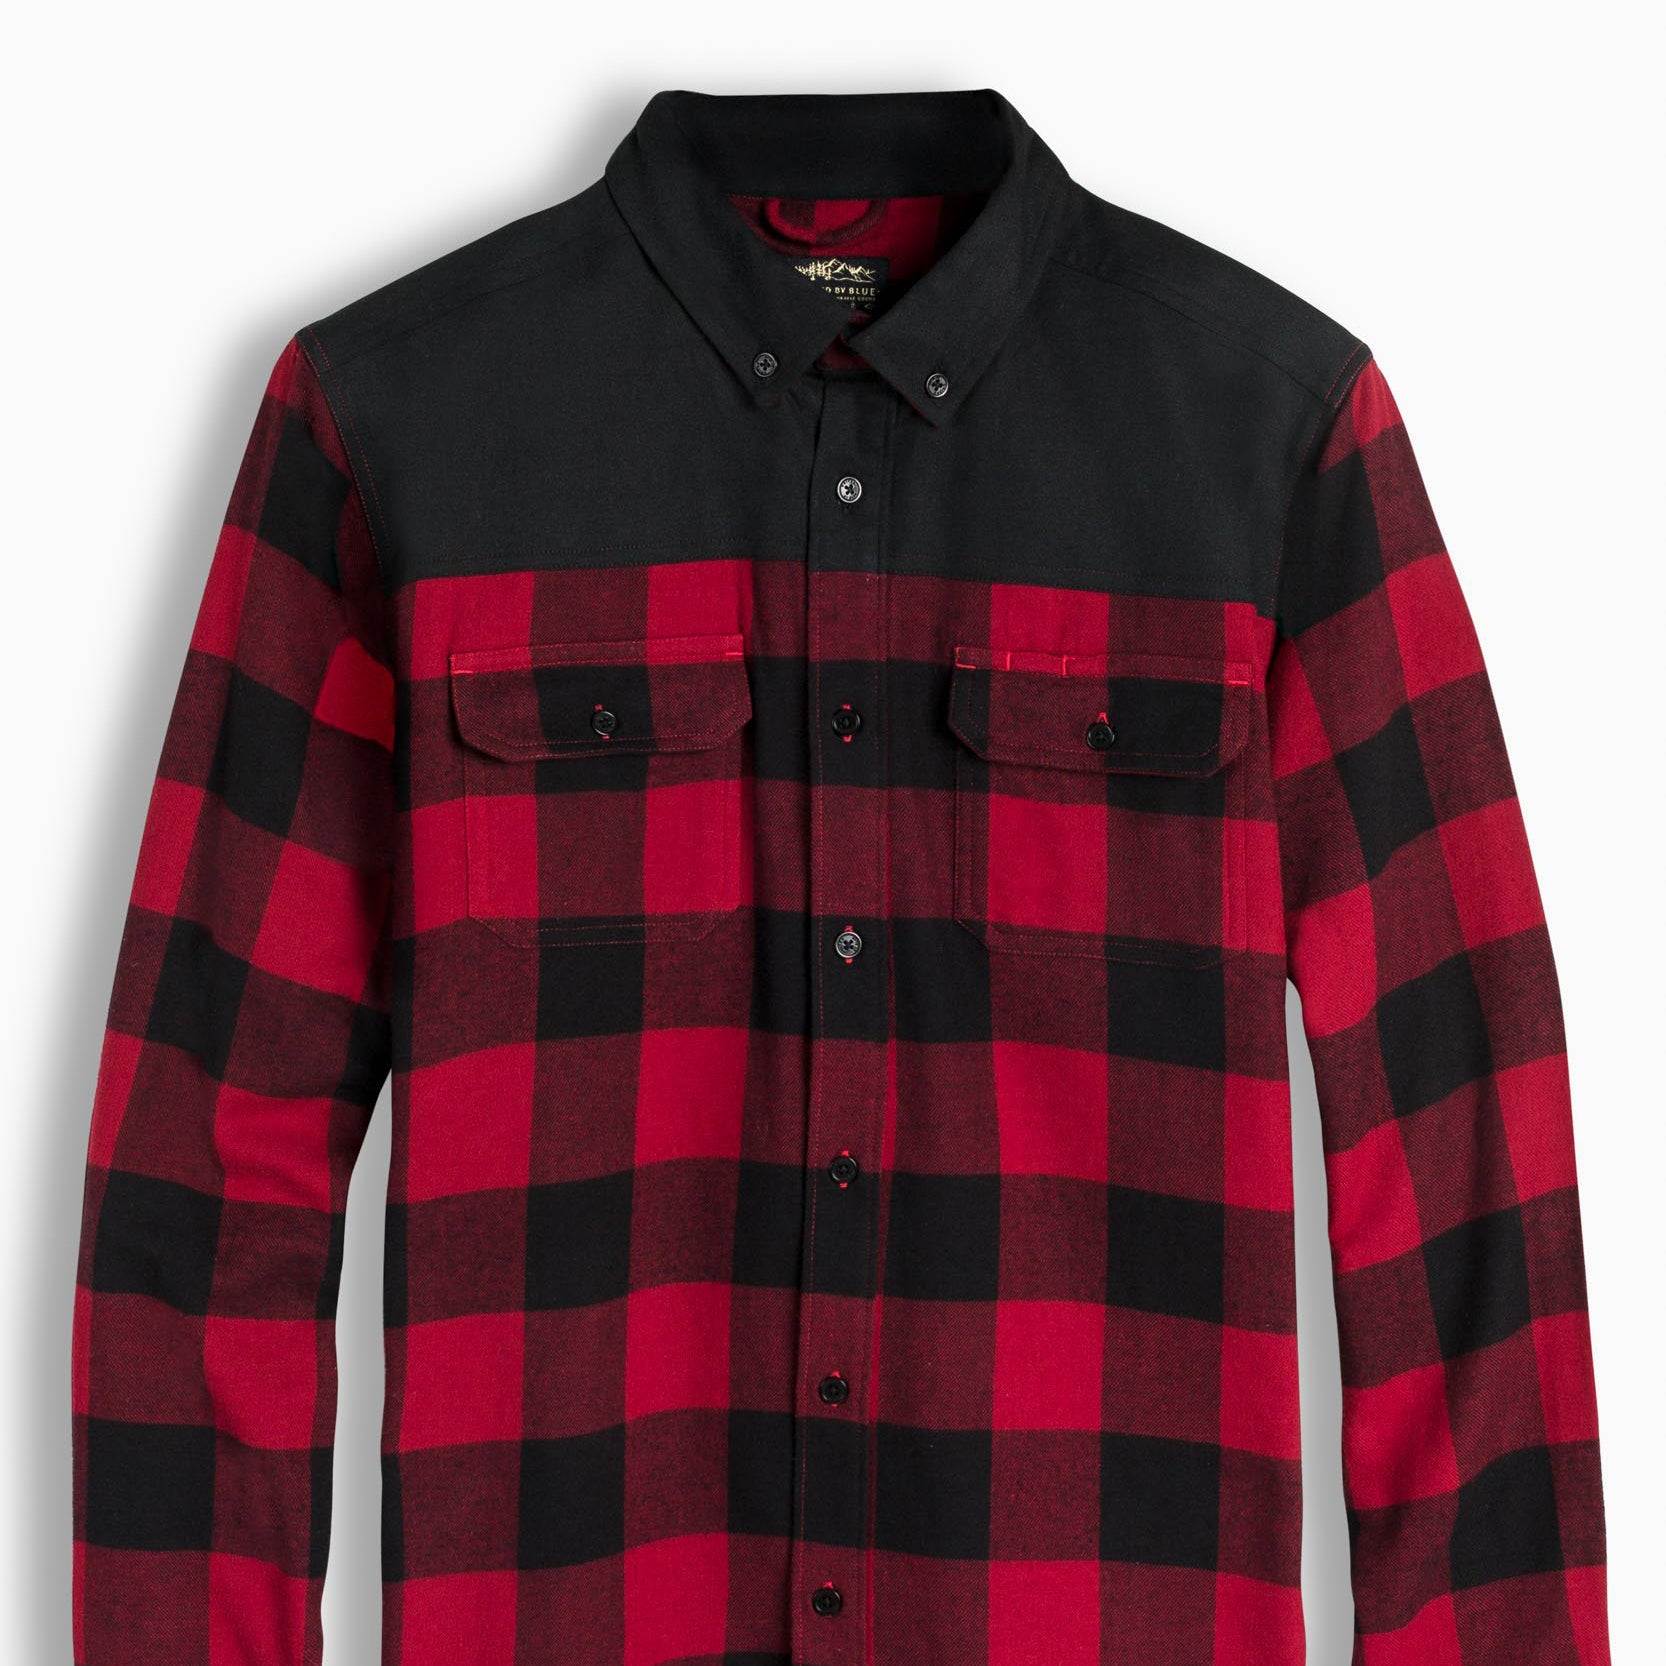 c3da5f60 Wenham 100% Organic Cotton Buffalo Plaid Shirt - The Good Buy